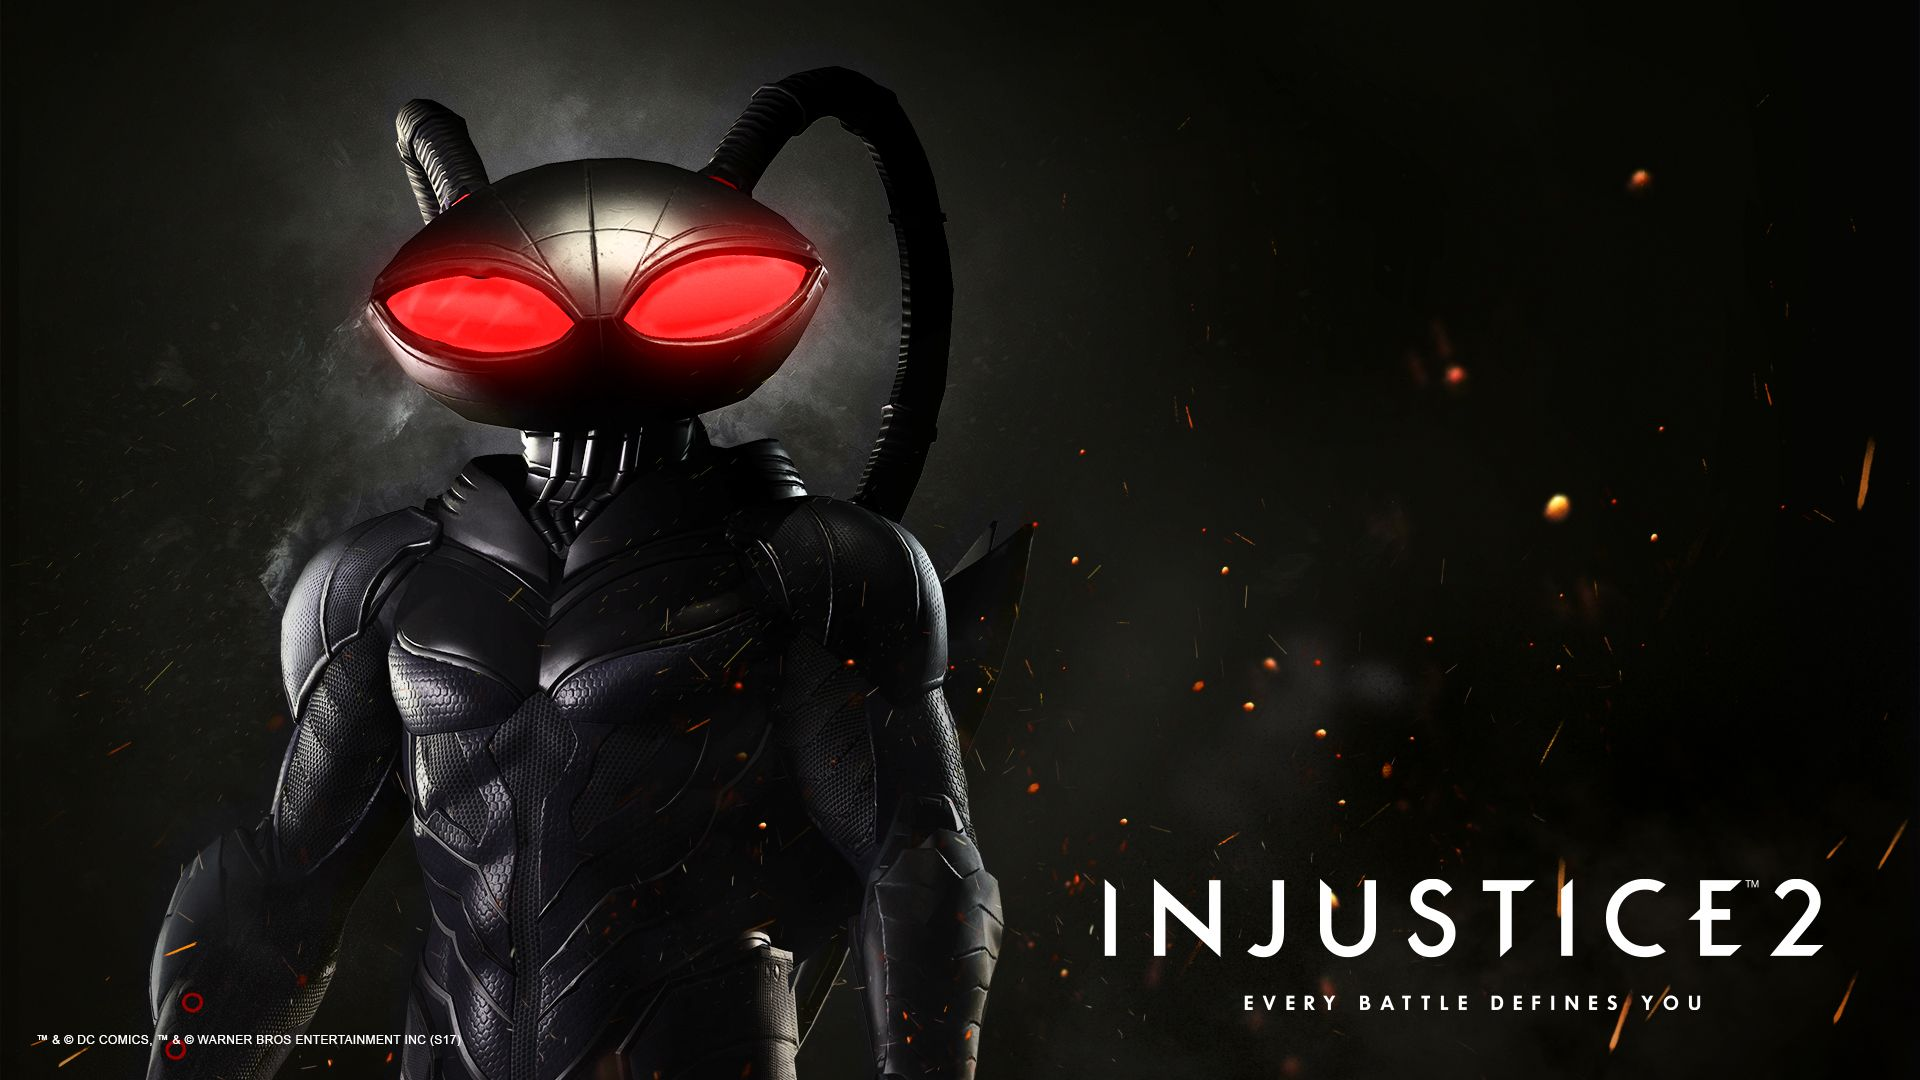 Injustice2 BLACKMANTA Wallpaper 1920x1080 84